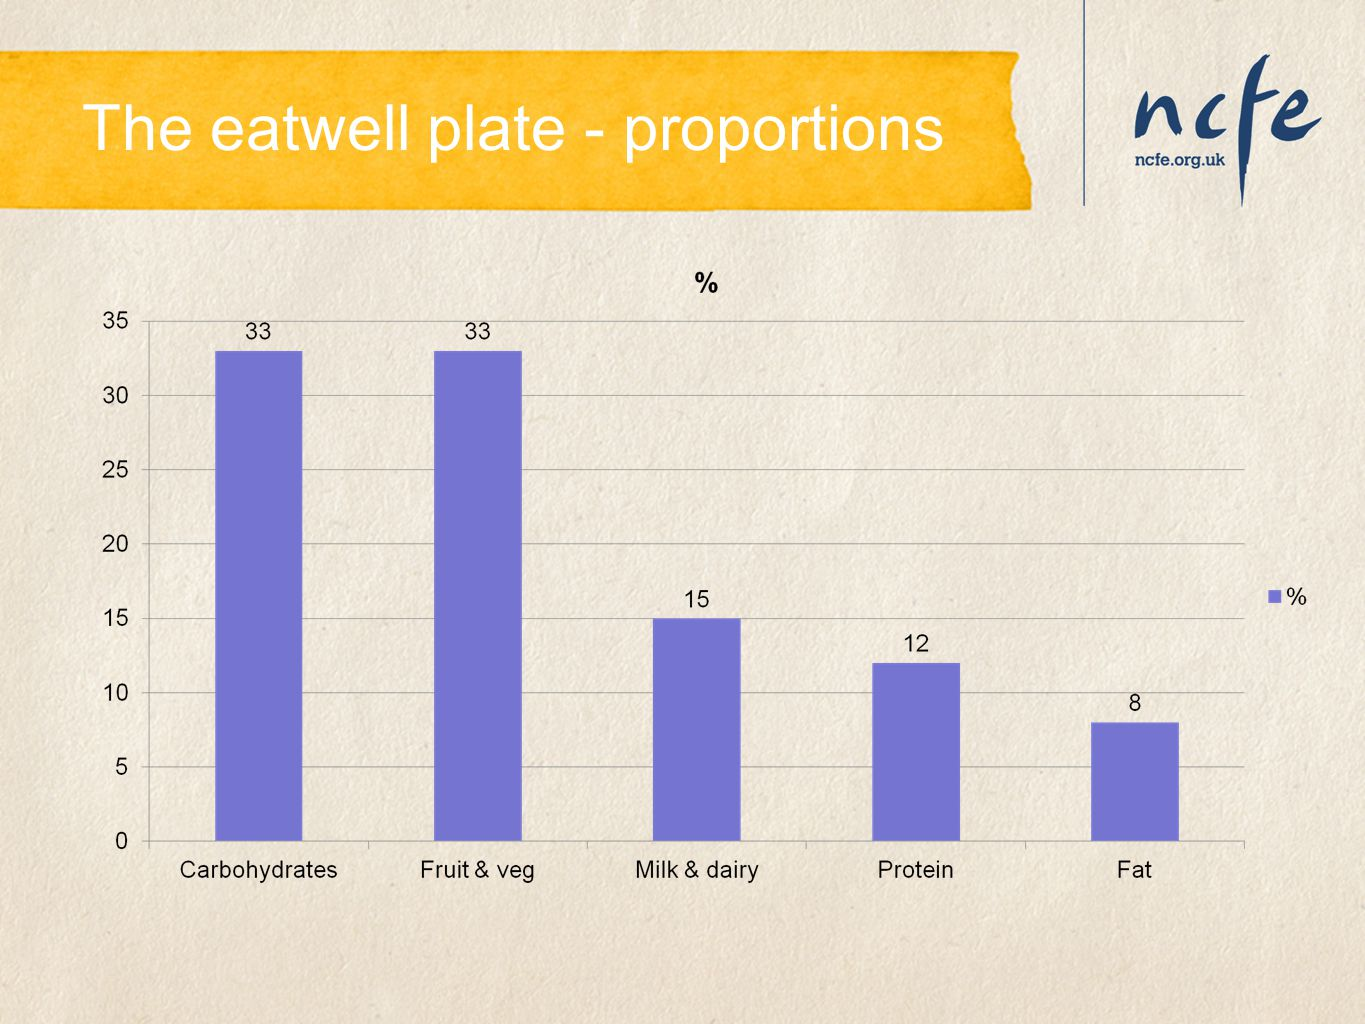 The eatwell plate - proportions